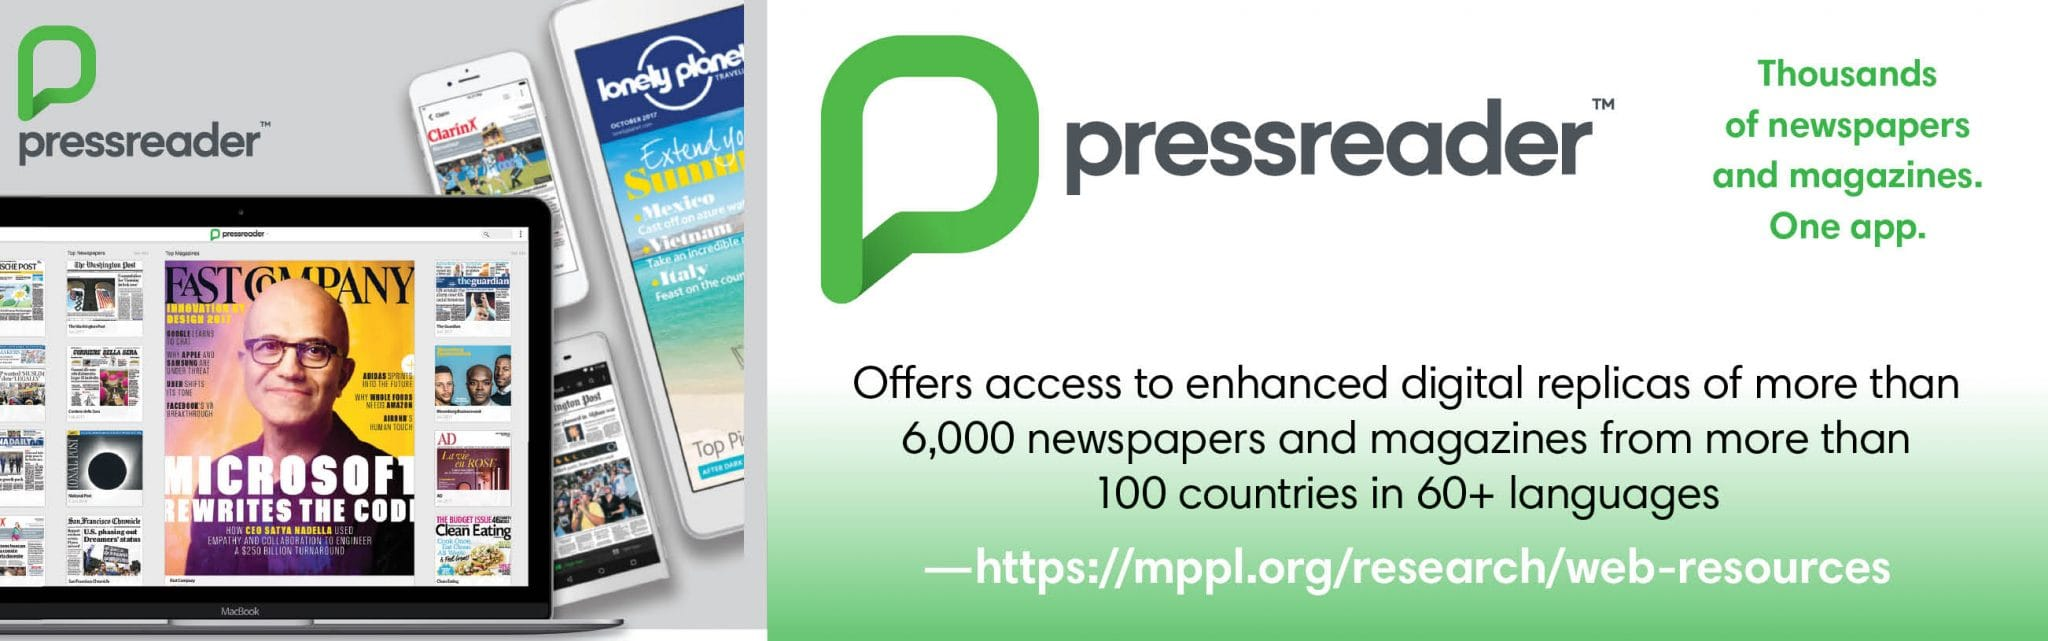 Pressreader - offers access to enhanced digital replicas of more than 6,000 newspapers and magazines.